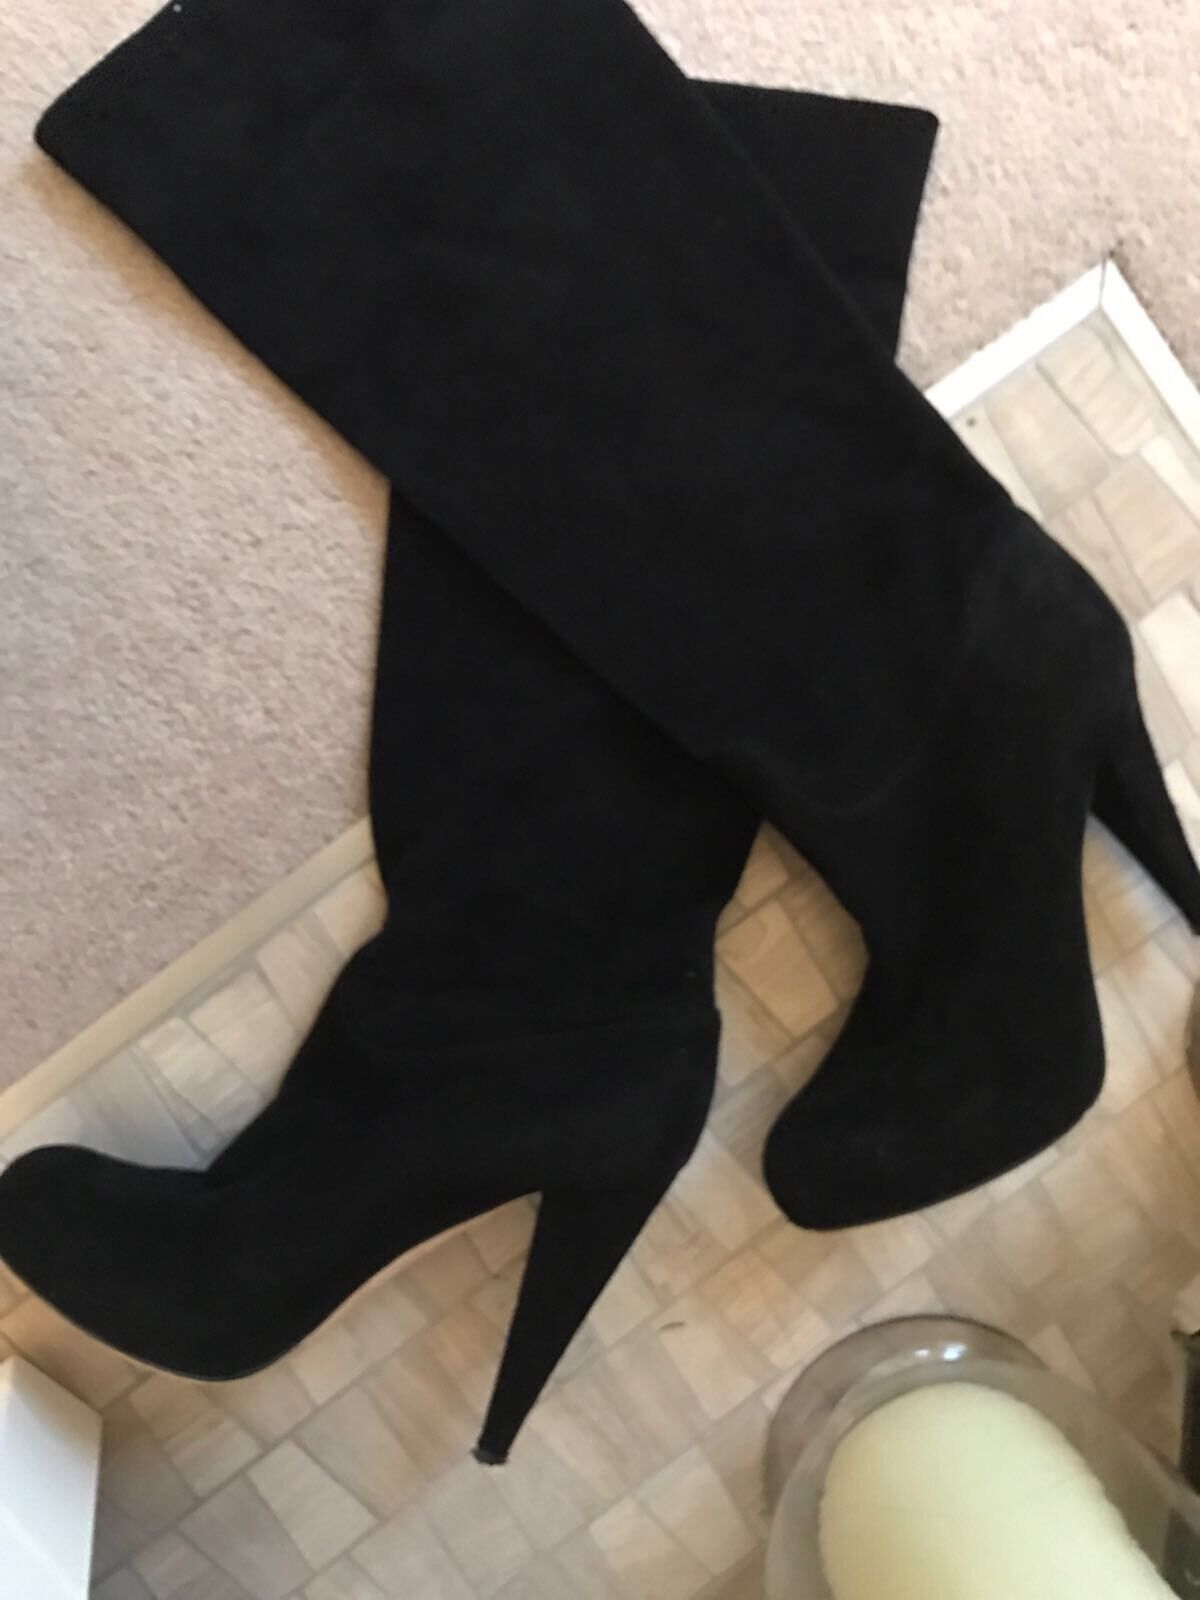 Bally Black Suede Platform High Heel Knee Hi High Boots shoes 38.5 & UK 5.5,